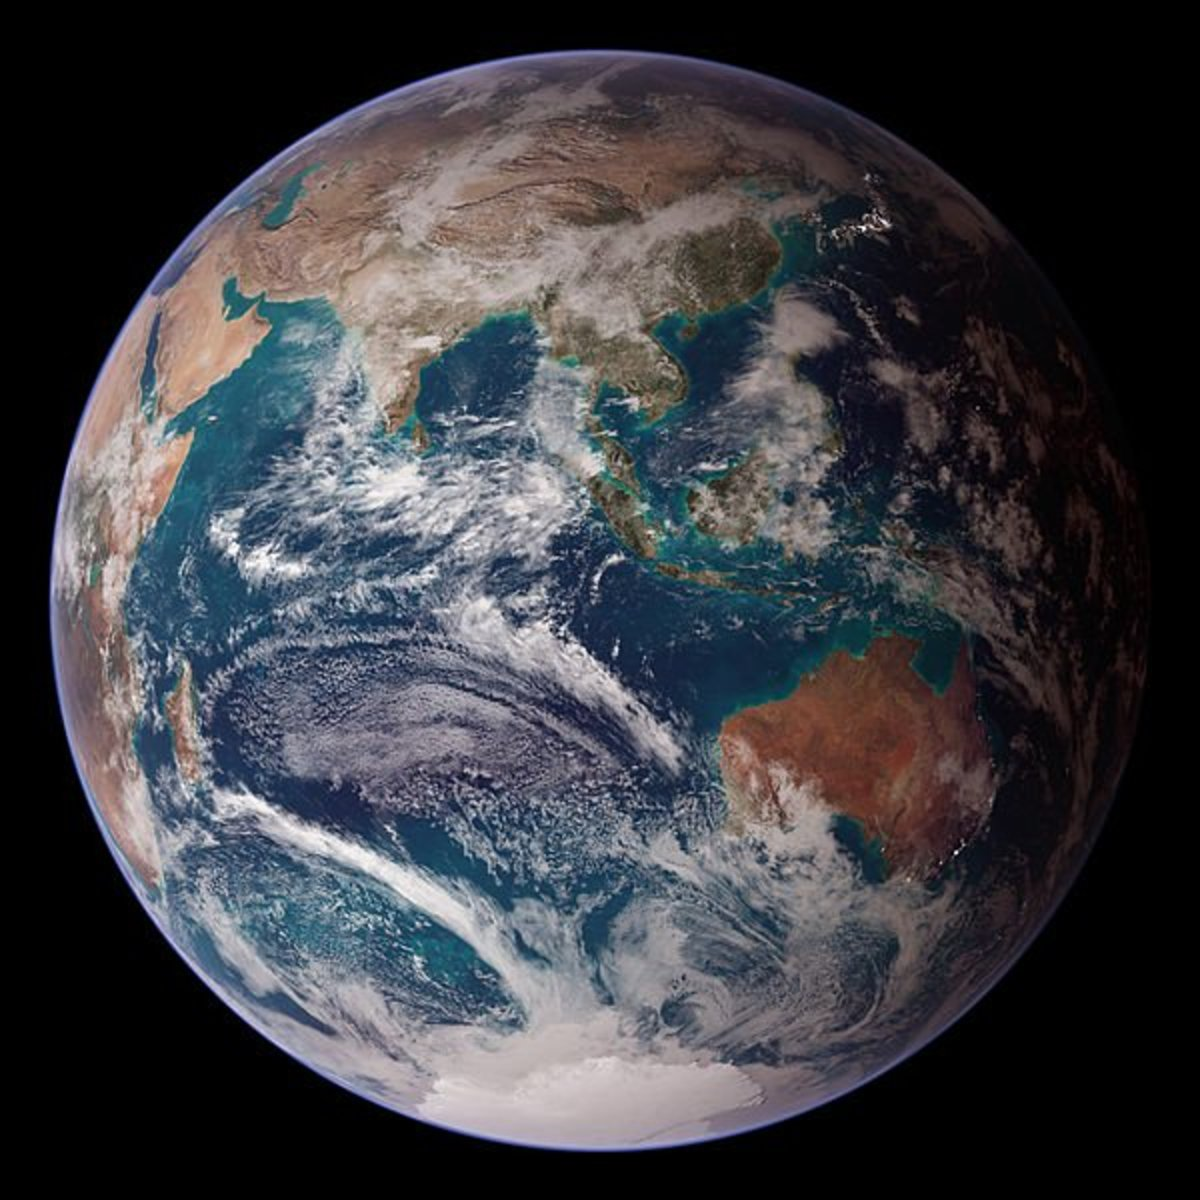 Could the Earth be hollow, and did Admiral Byrd record his visit to inner earth in his diary?